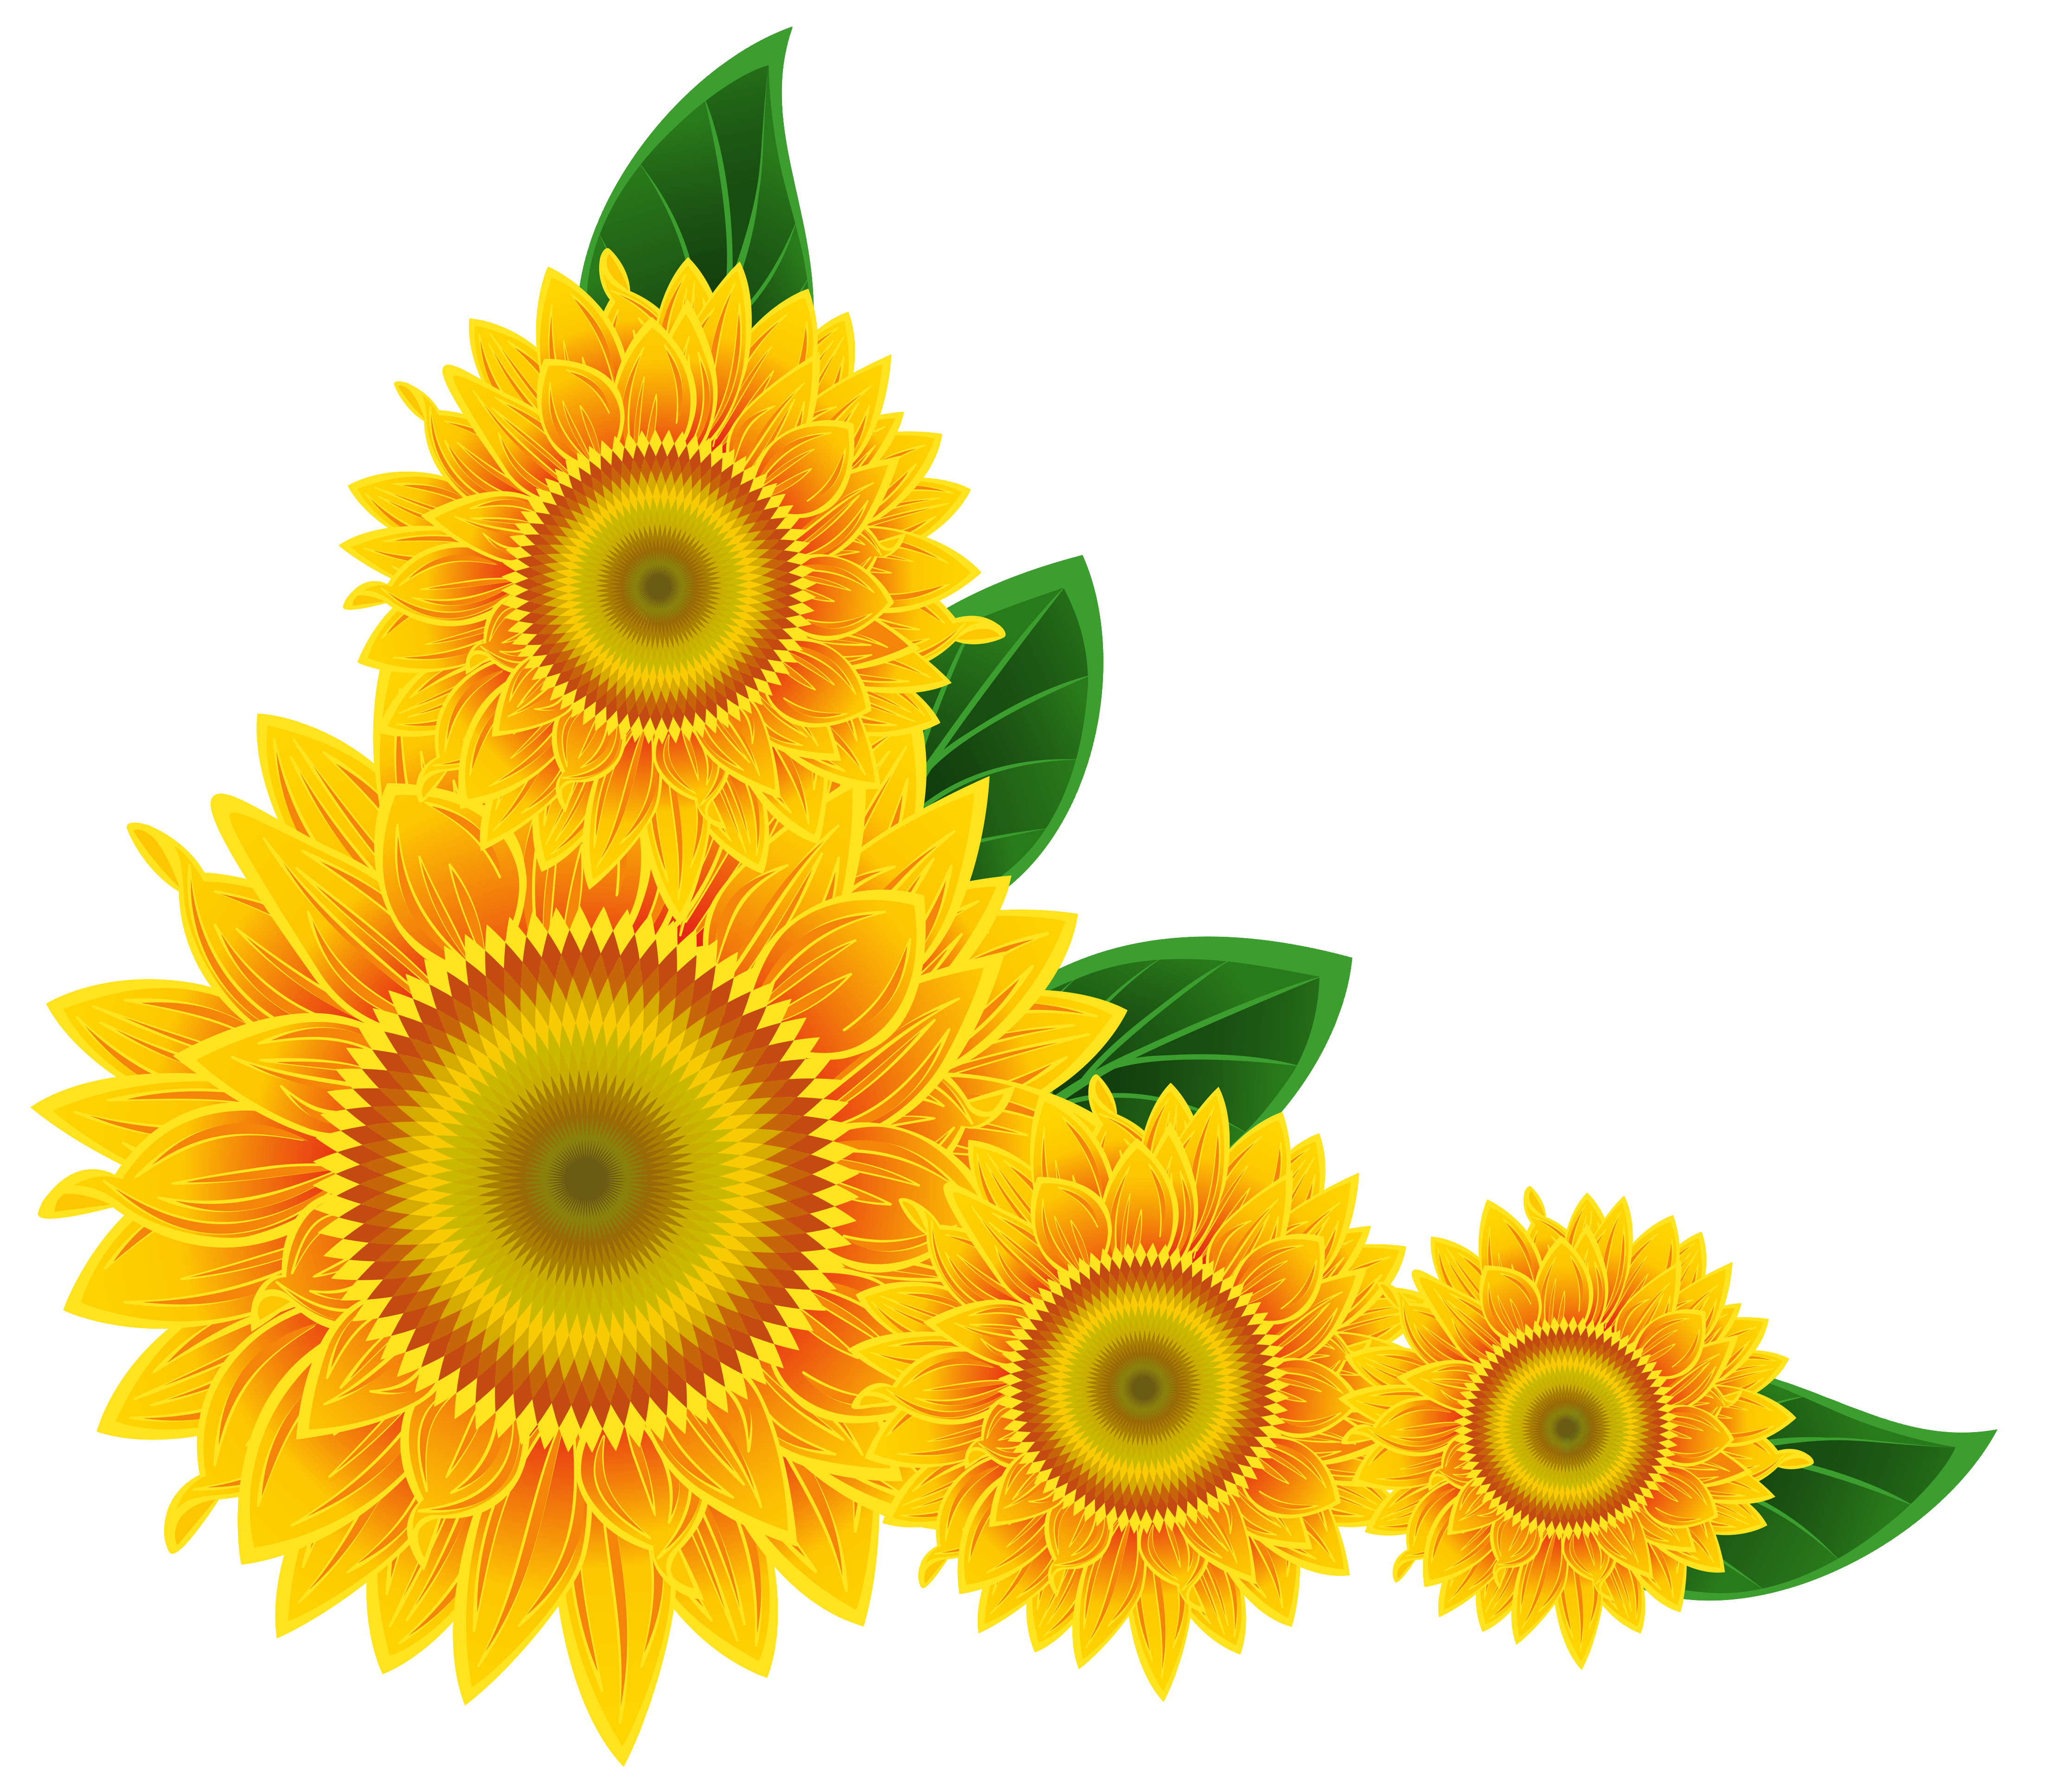 Yellow flower border clipart vector royalty free Sunflower Corner Decoration PNG Clipart Image | Gallery ... vector royalty free